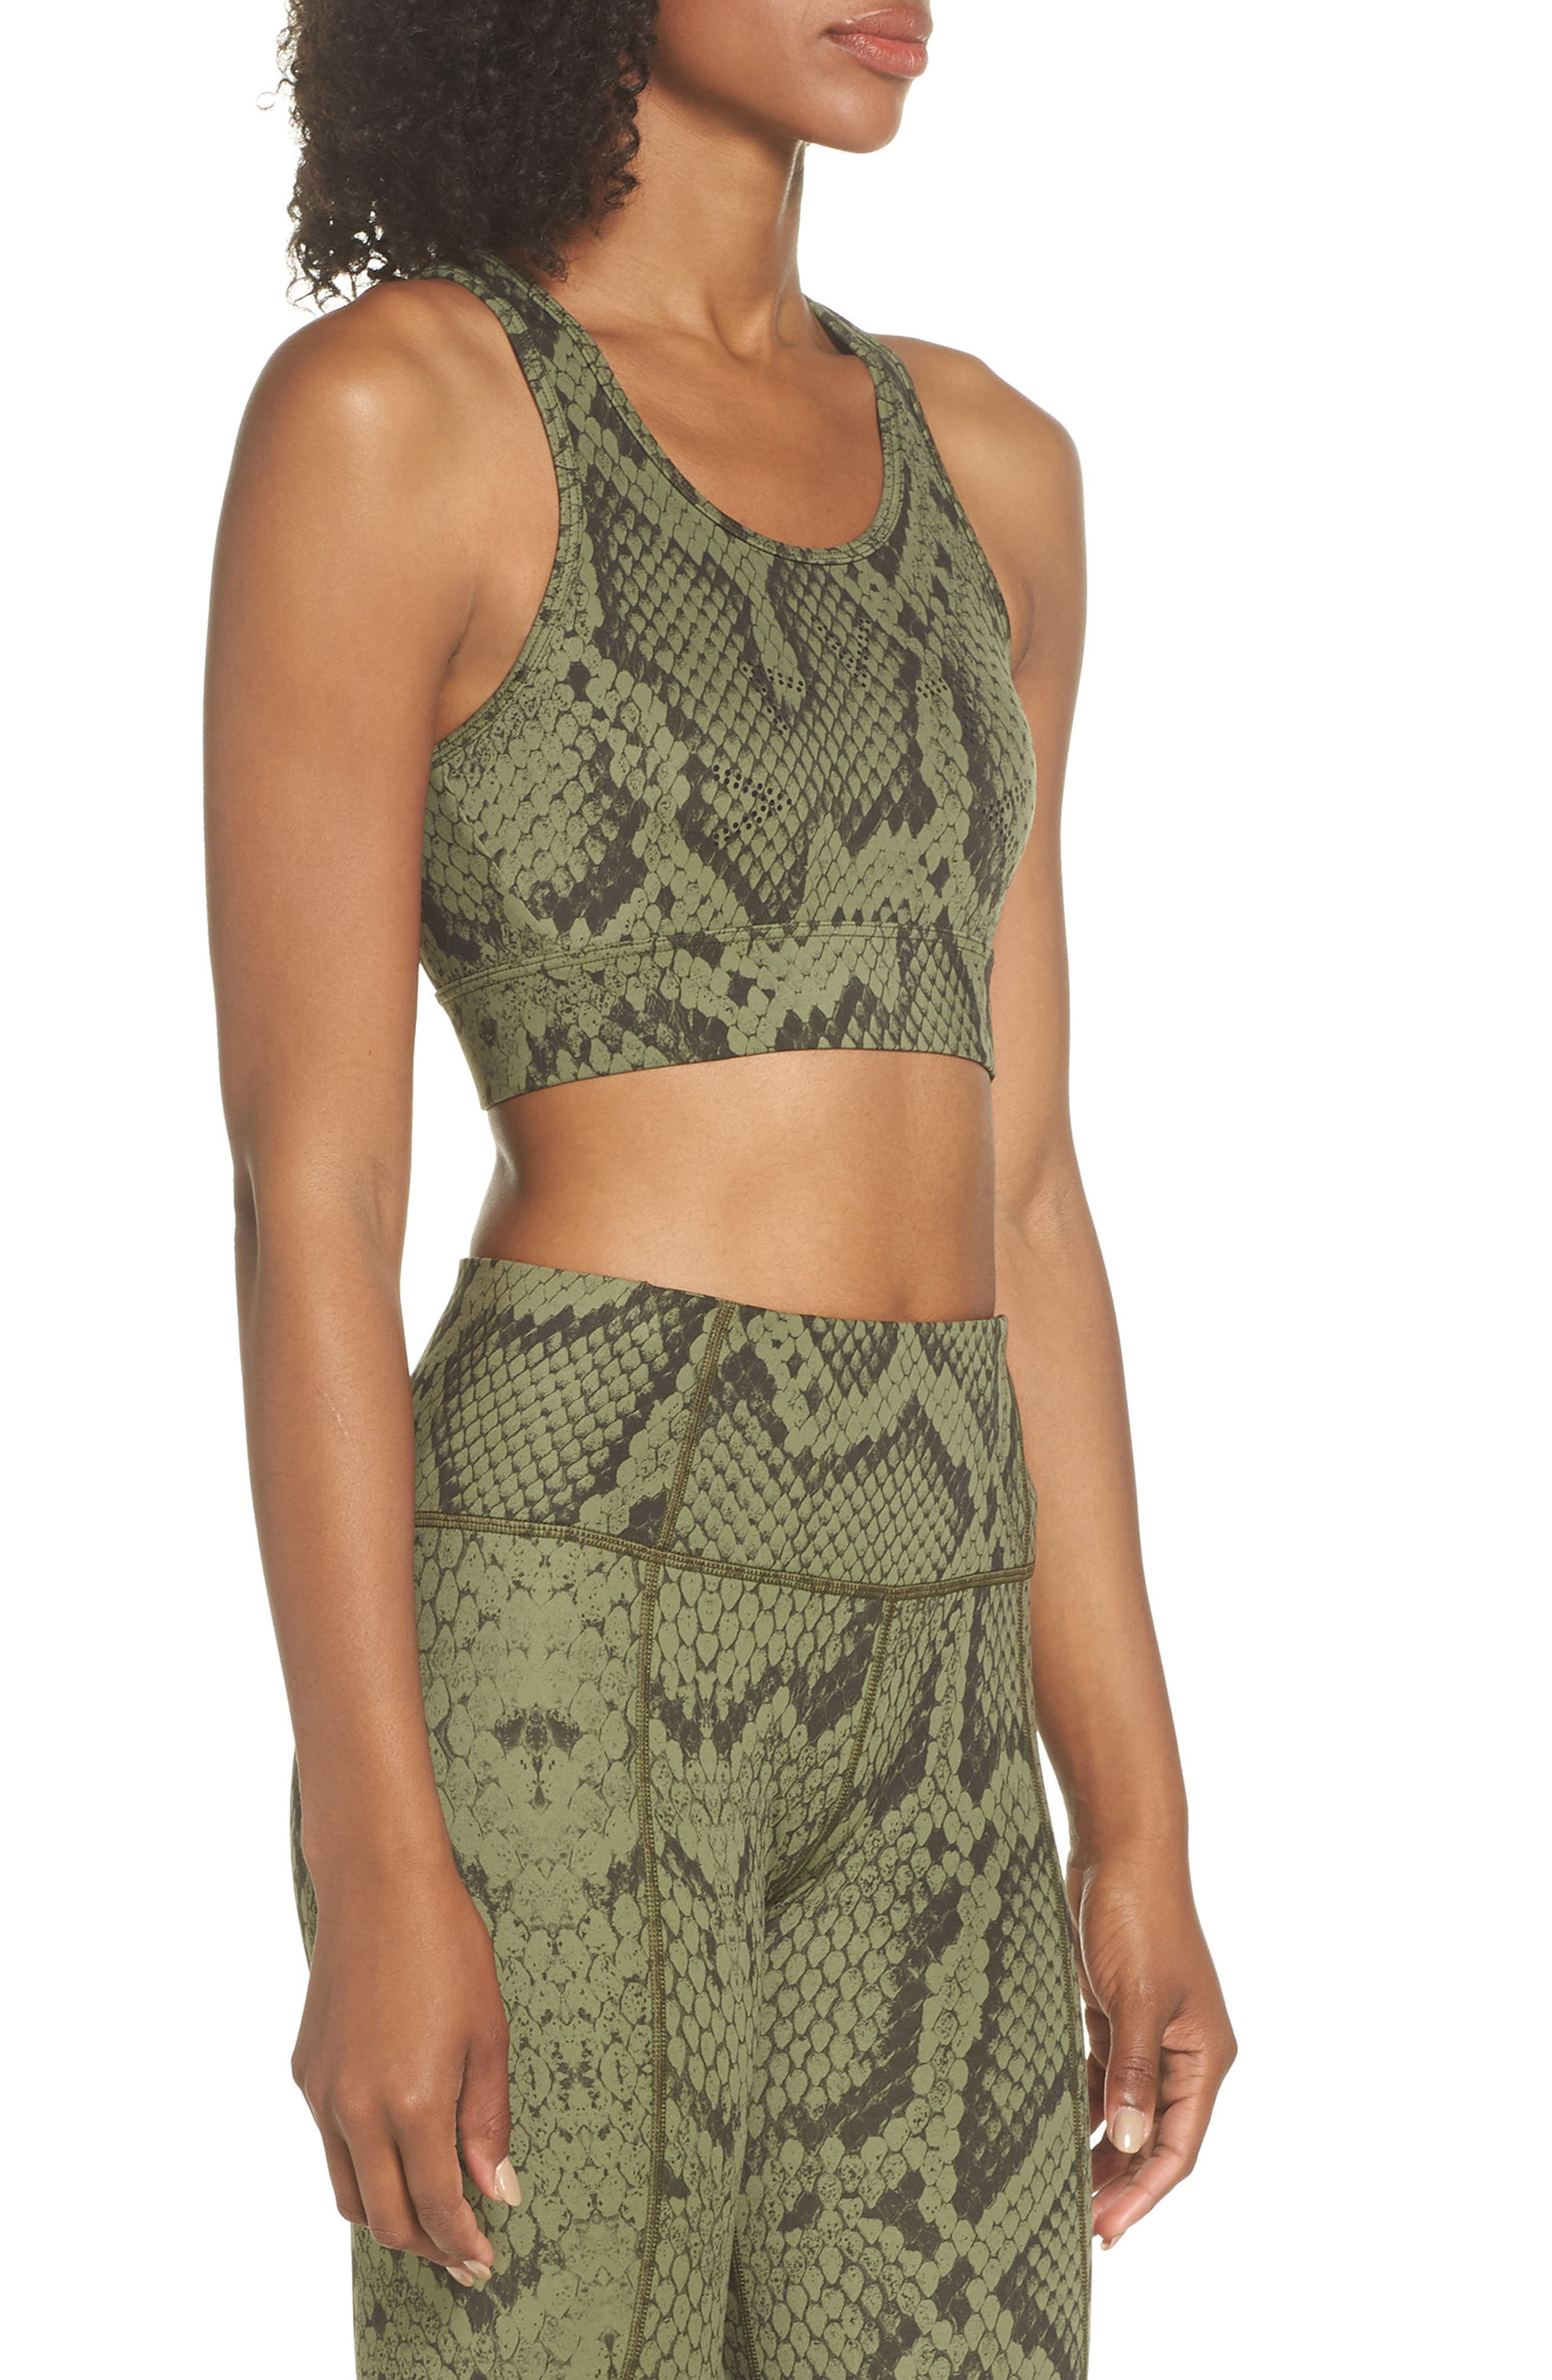 Berkeley Sports Bra,                             Alternate thumbnail 3, color,                             OLIVE SNAKE